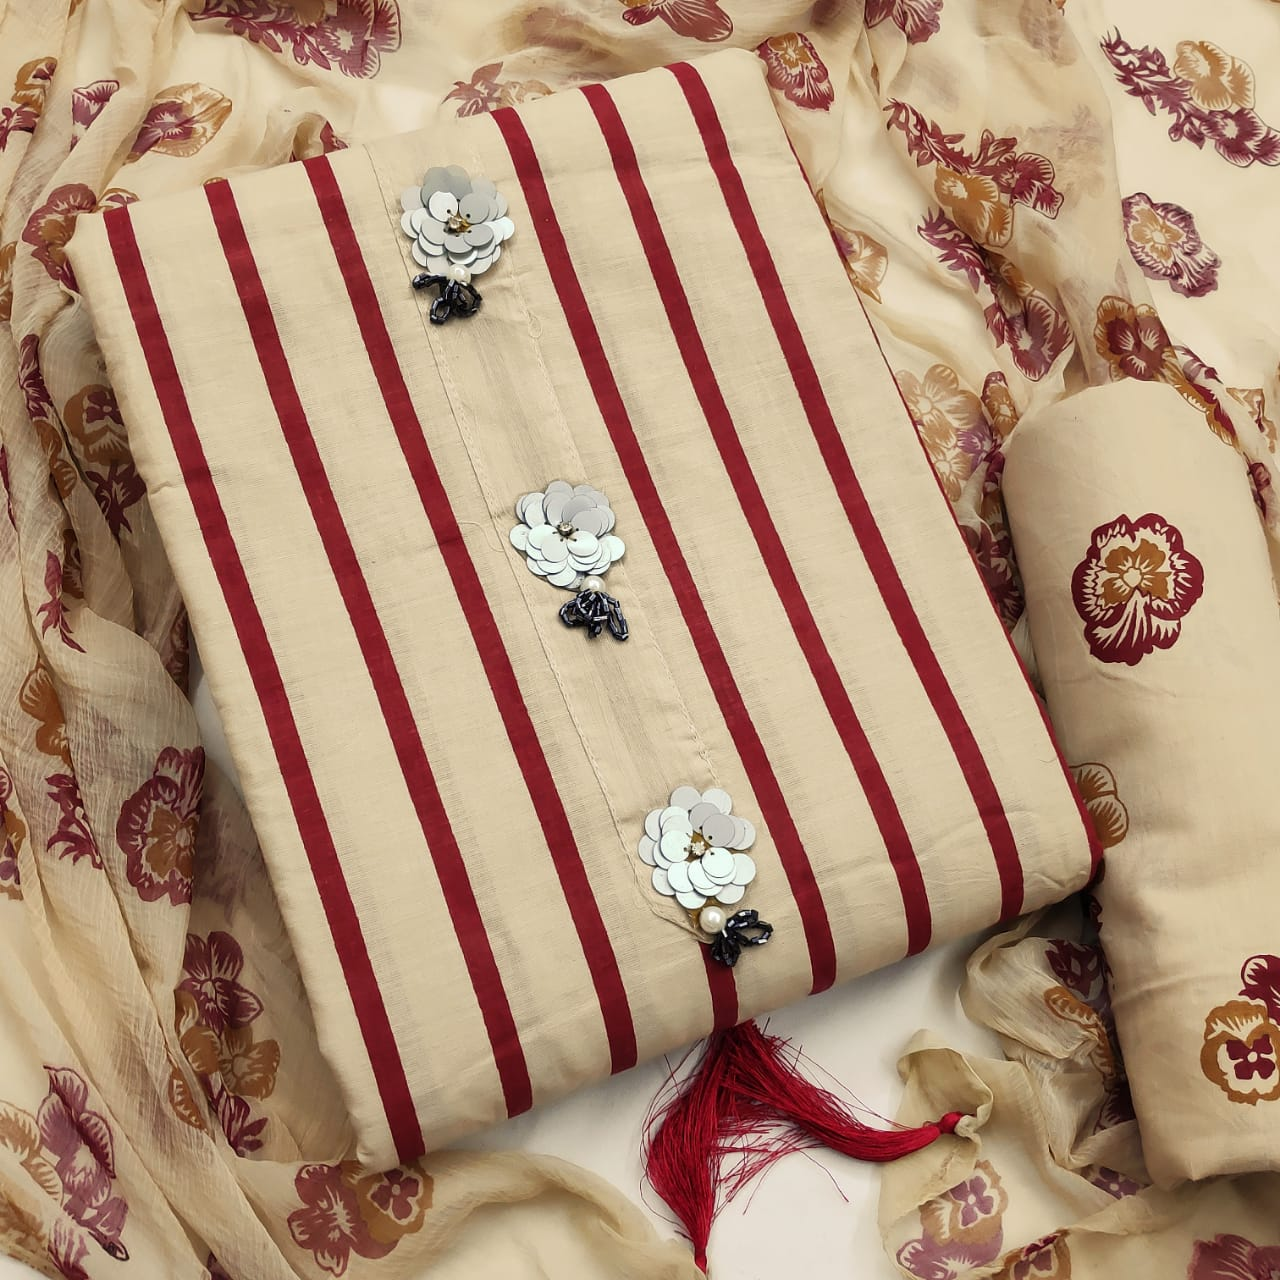 Thankar  Fancy and Printed Wear Cotton Dress Material Catalog at Wholesale rate